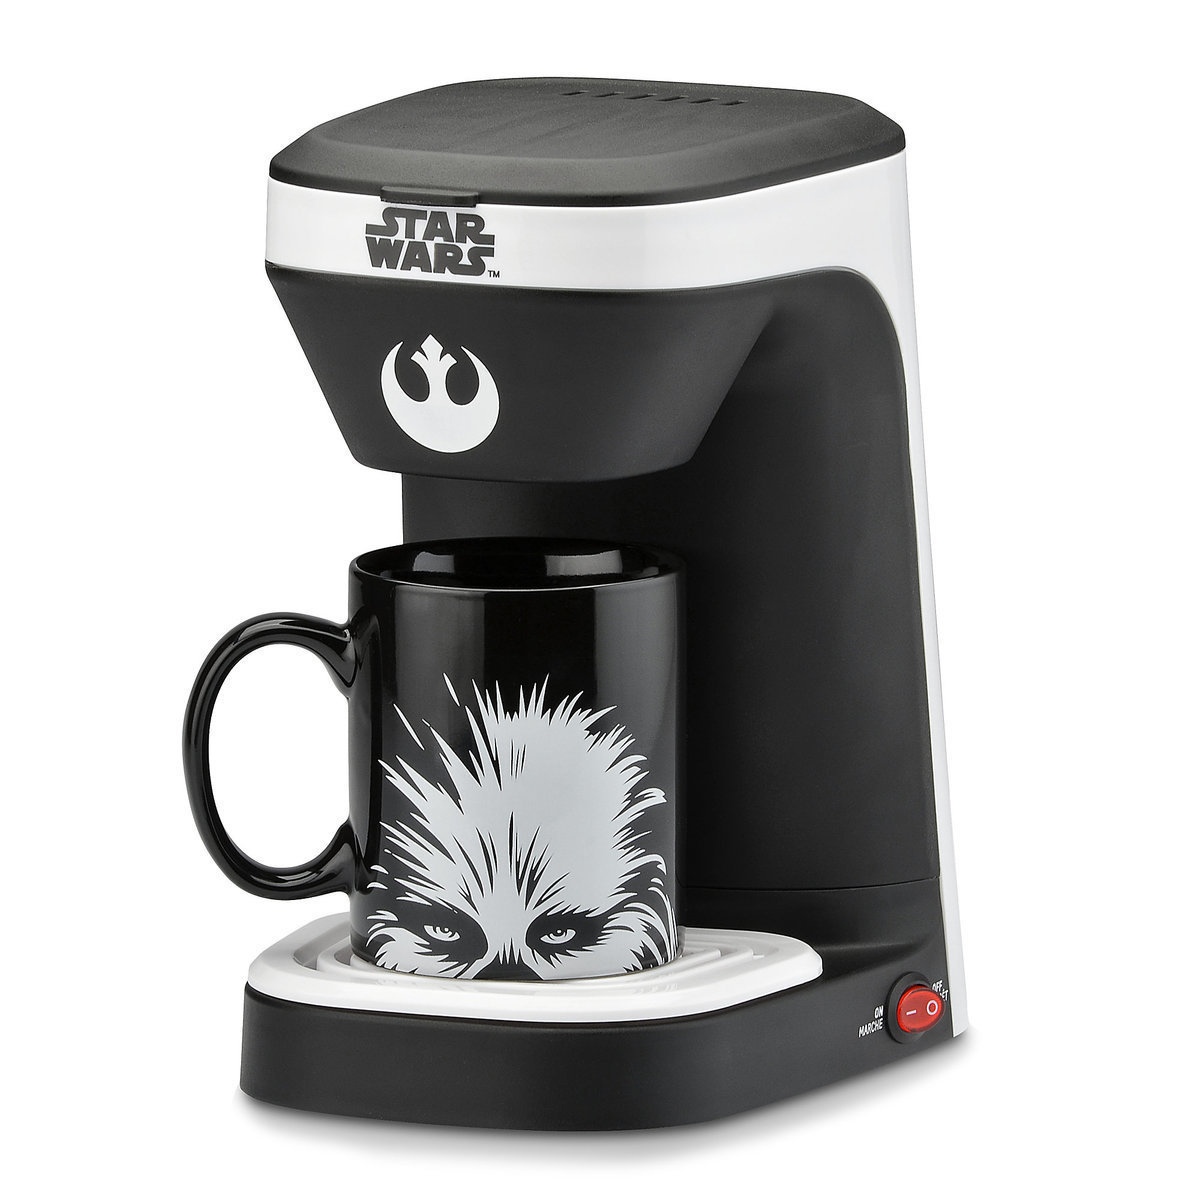 Chewbacca 1-Cup Coffee Maker - Star Wars